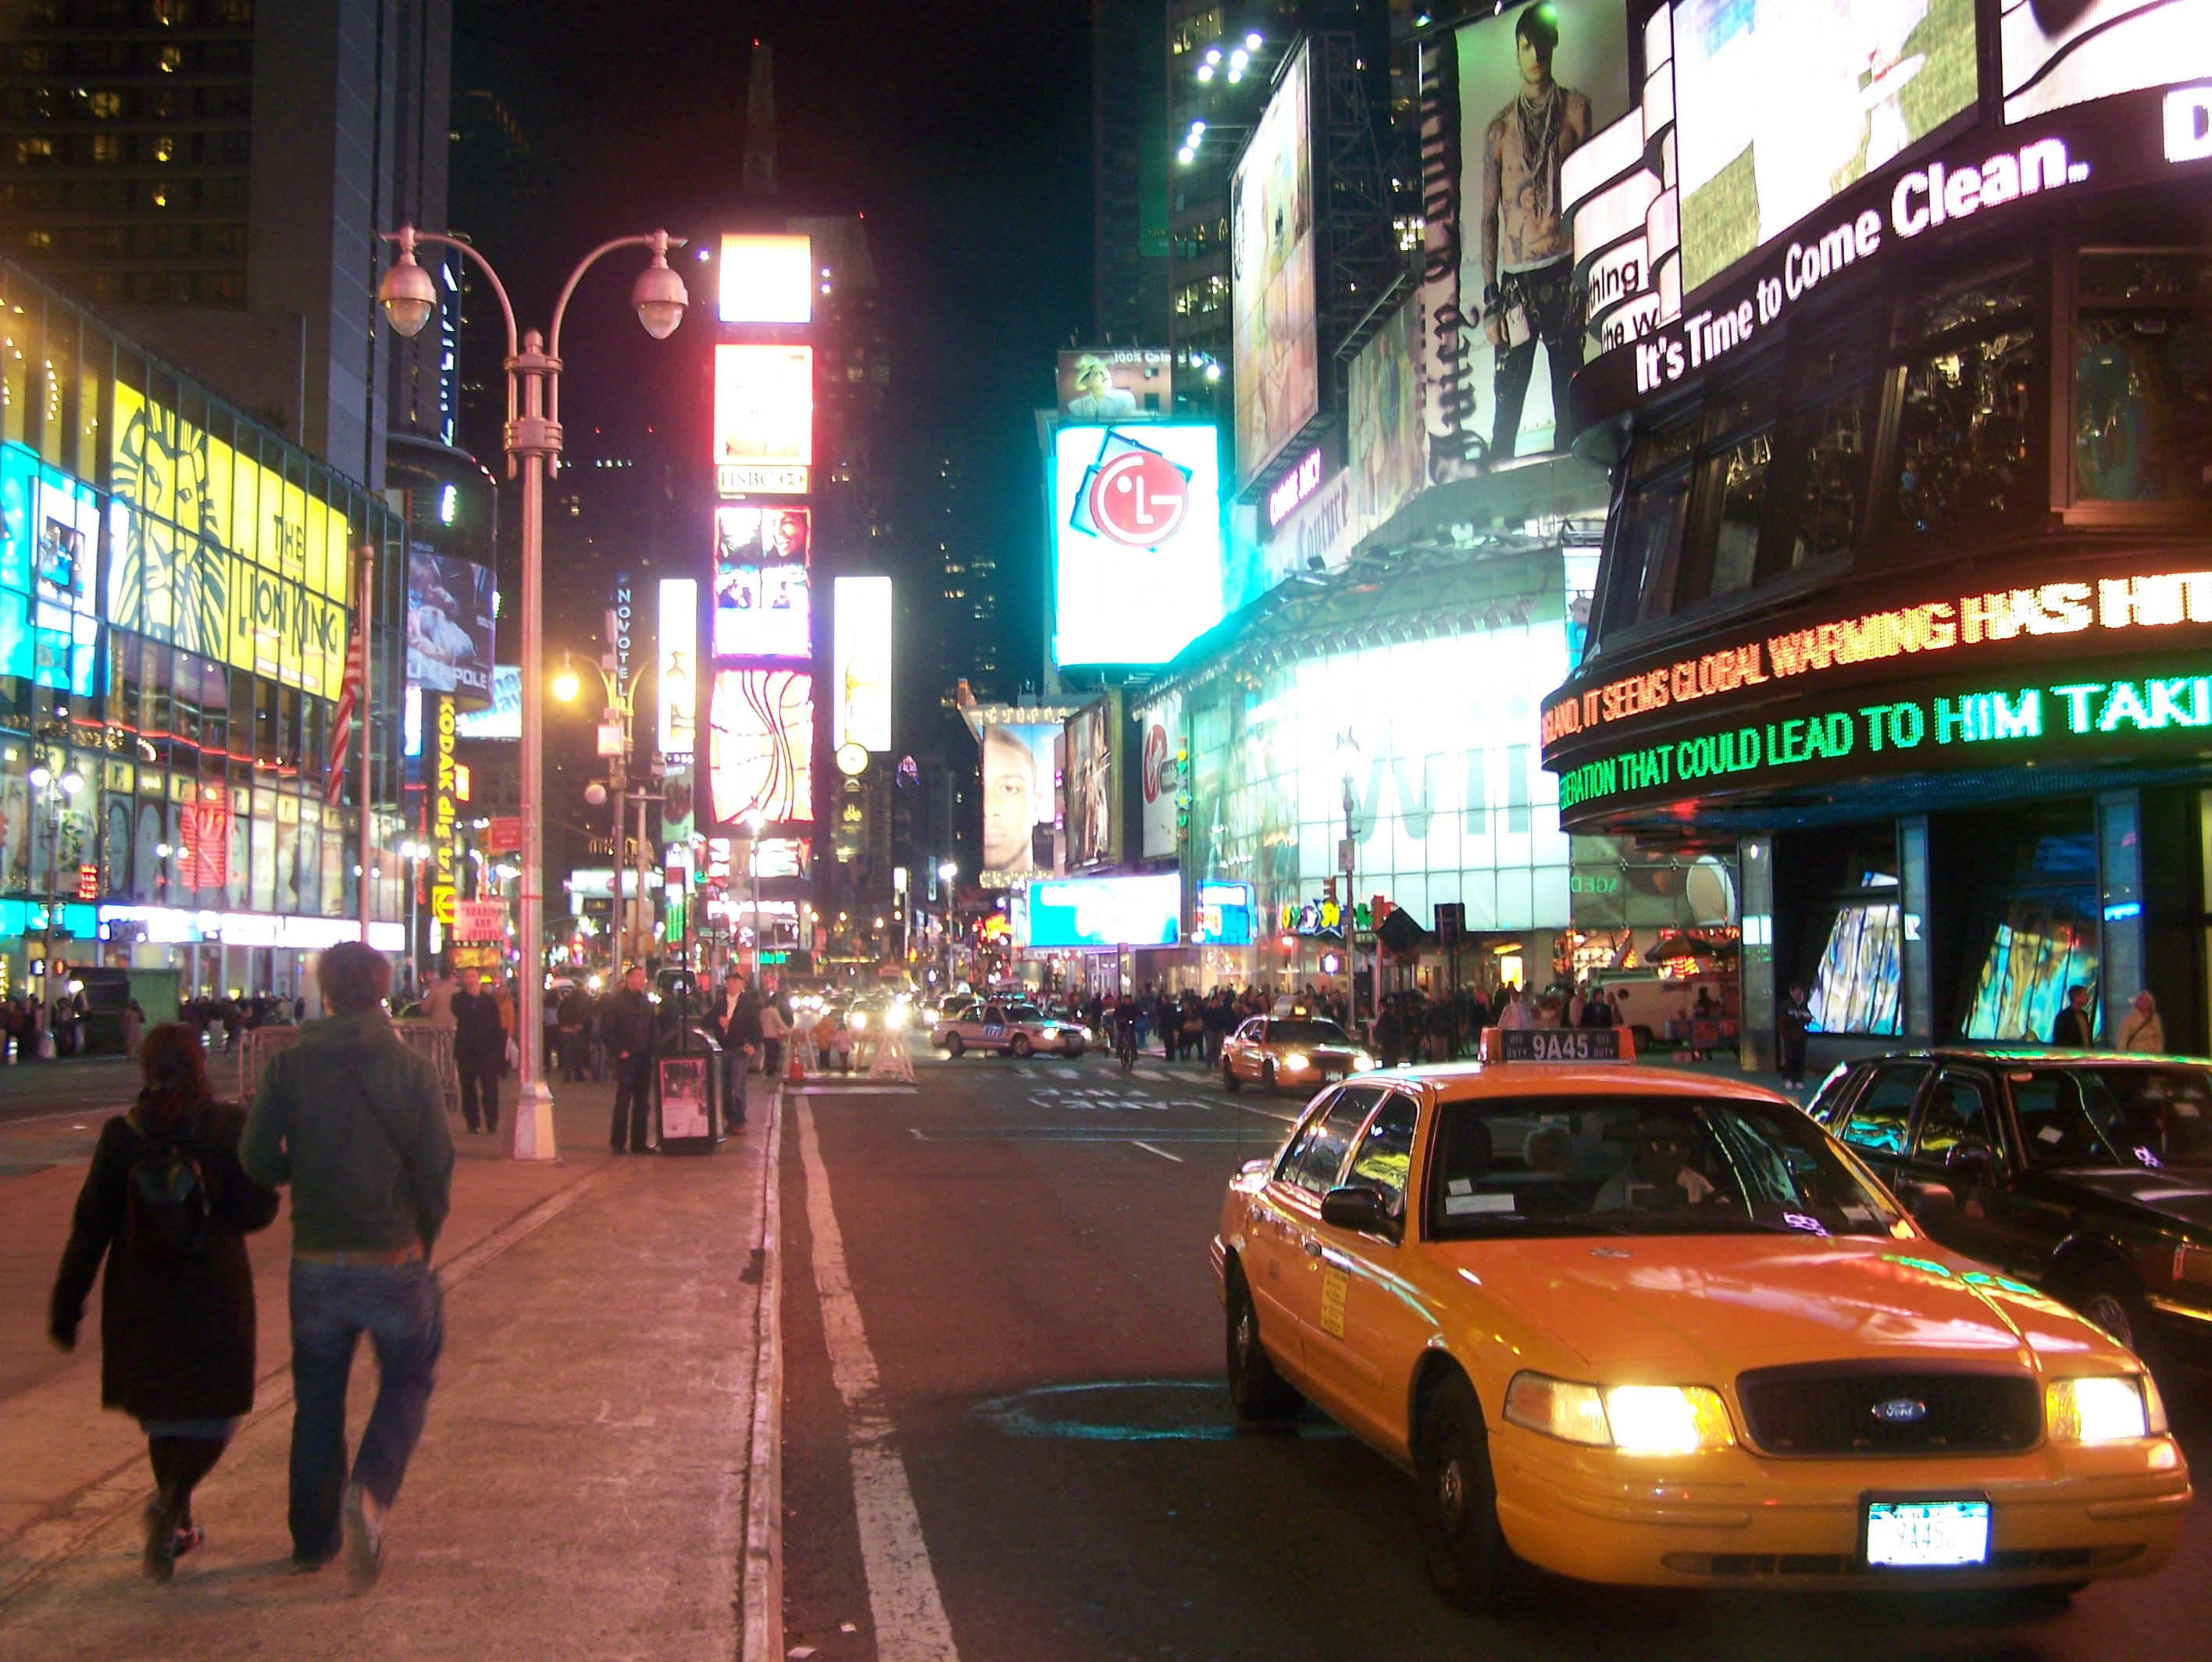 Description times square nuit